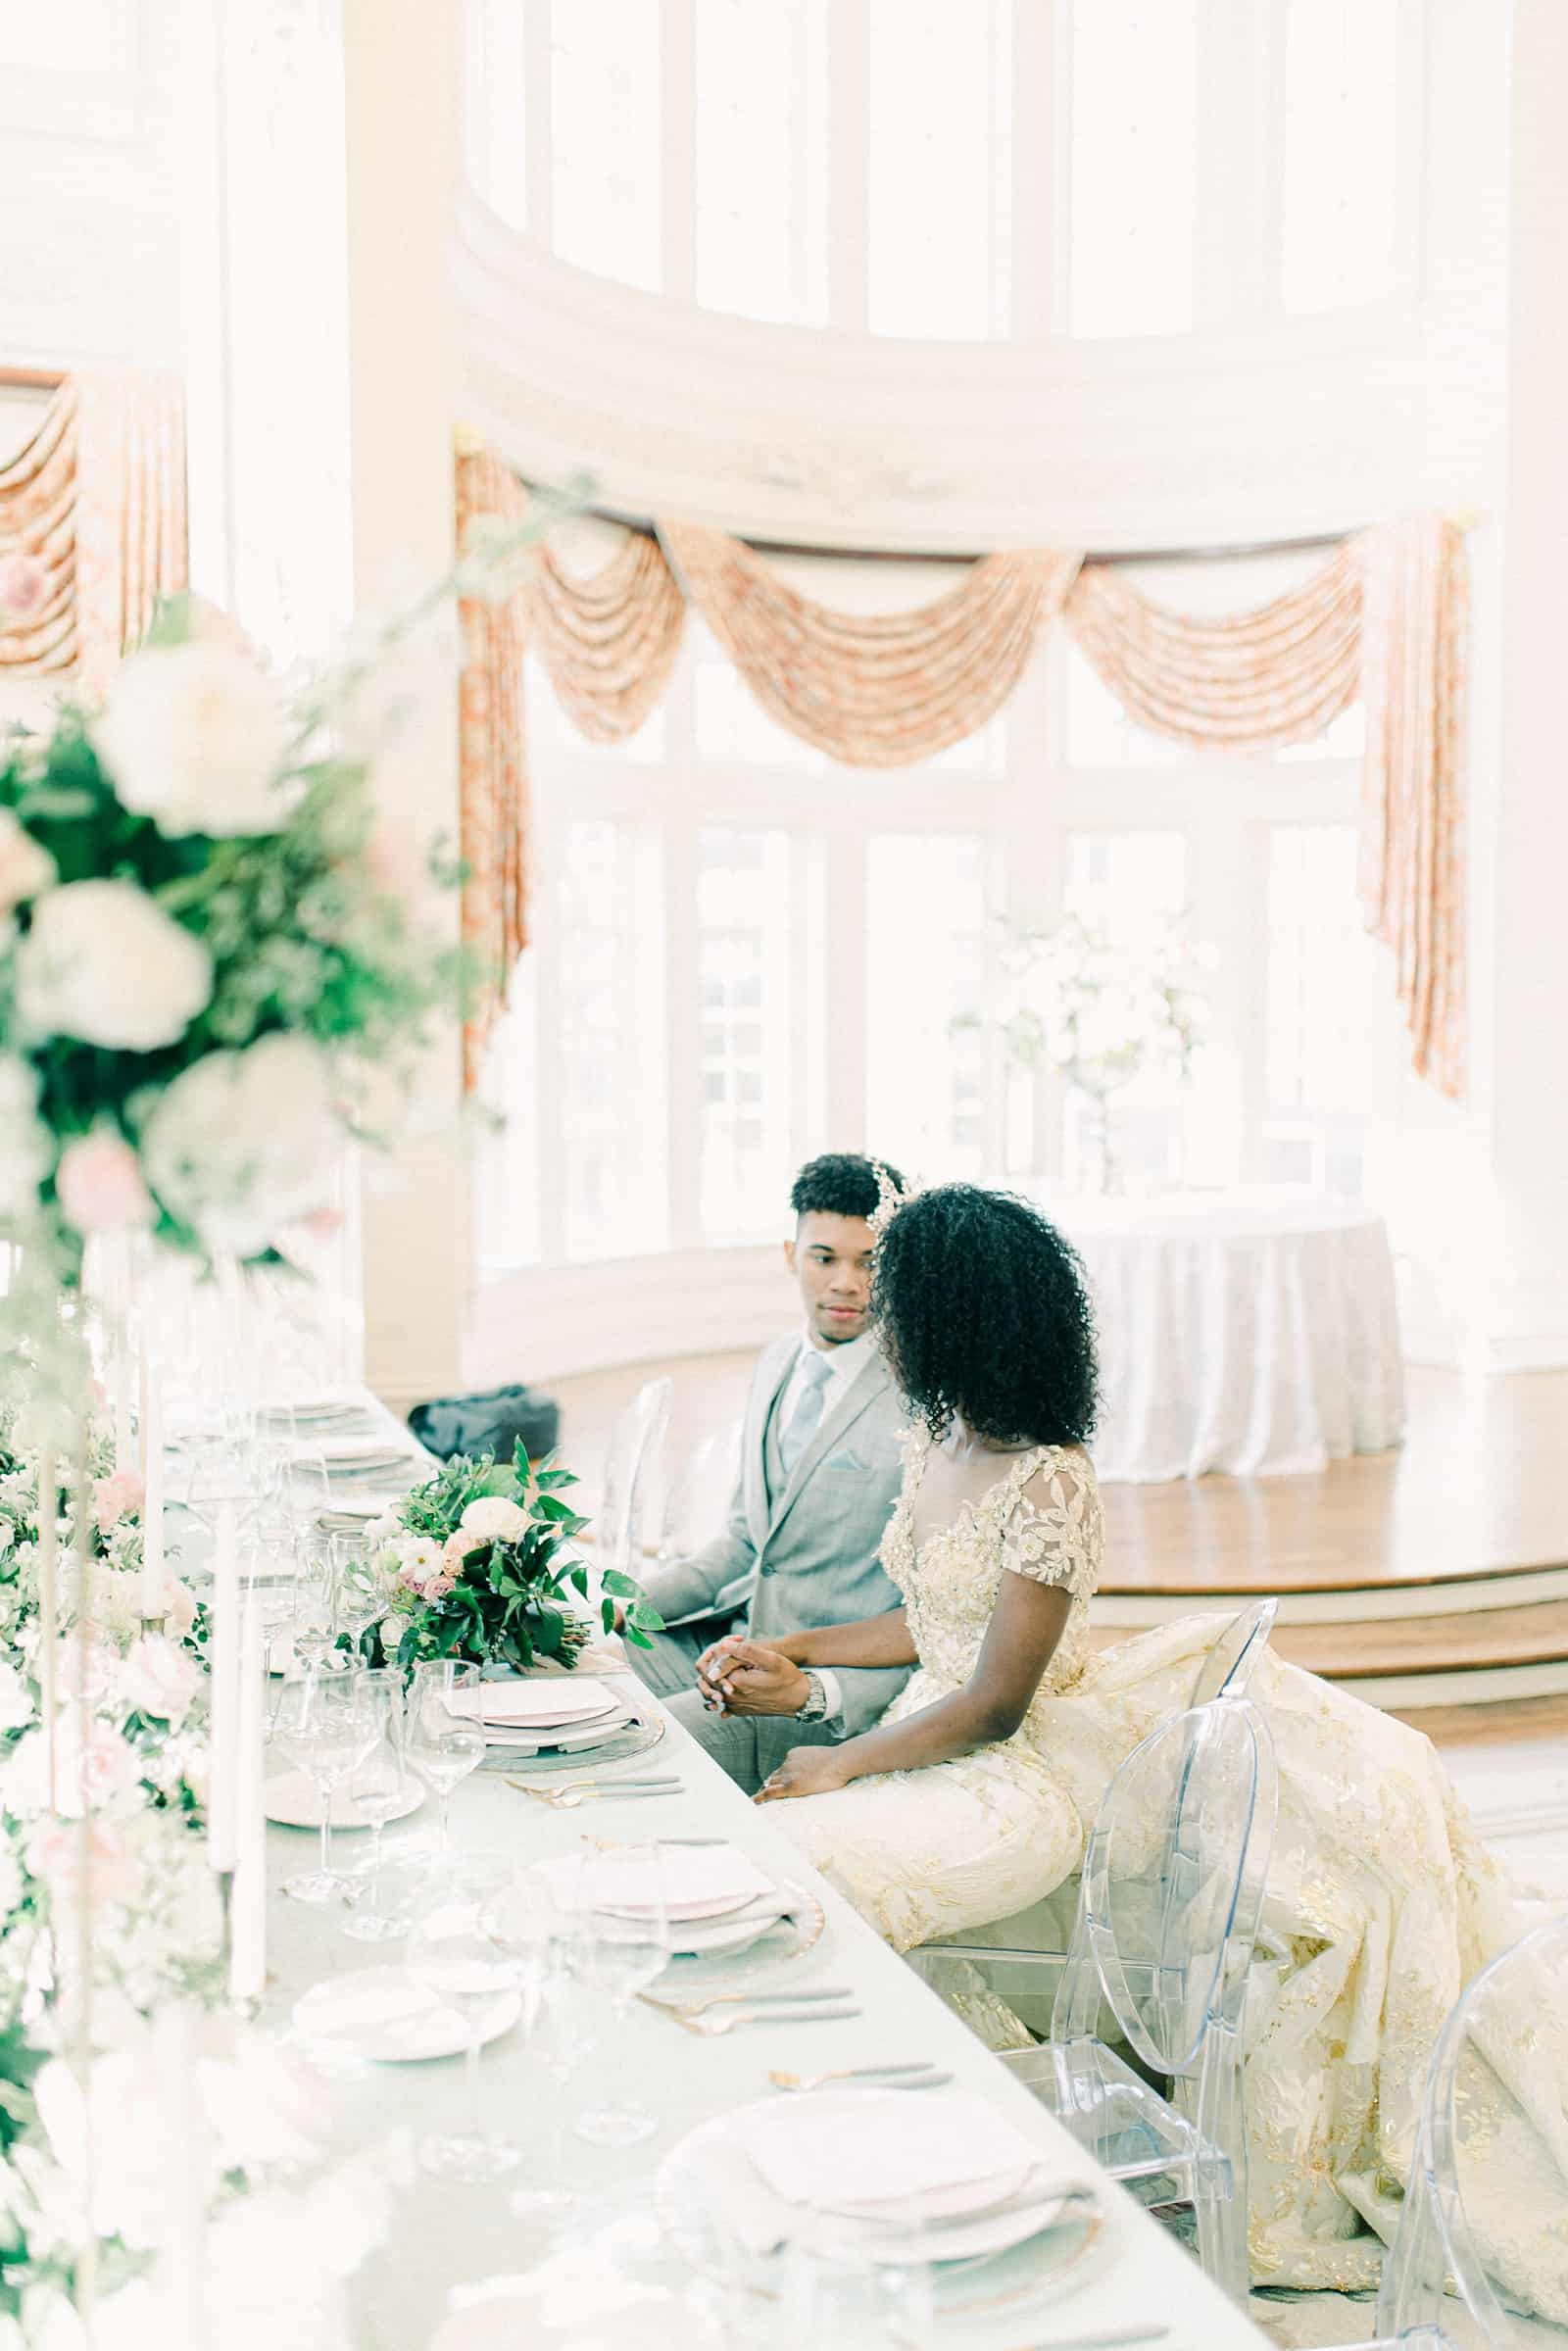 Bride and groom sitting at wedding dining table with light blue tablecloth, clear dining chairs, tall pink and white flower centerpieces, reception decor